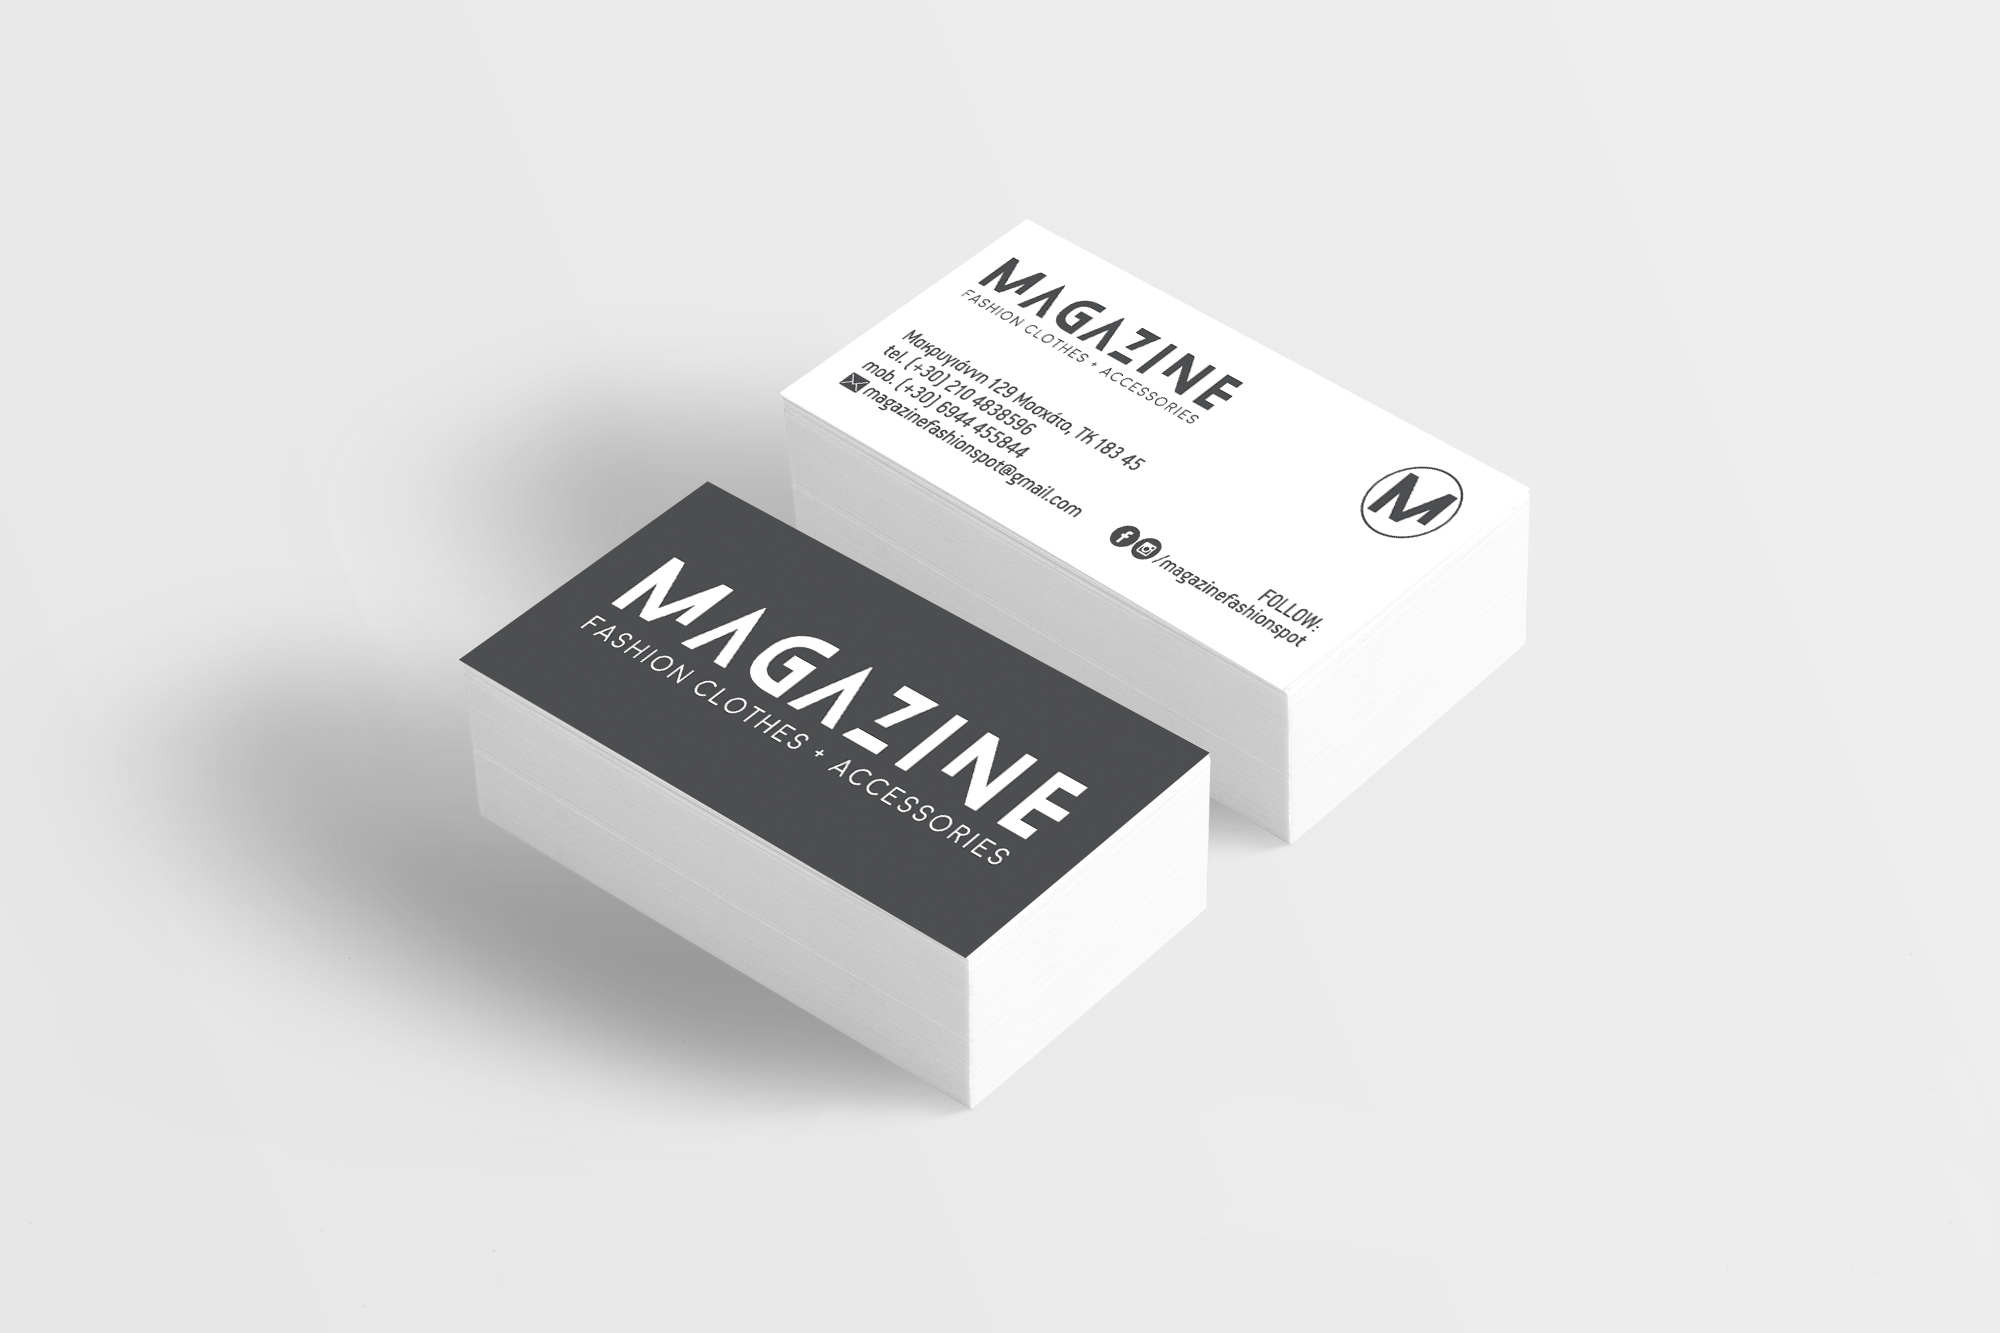 Magazine business cards